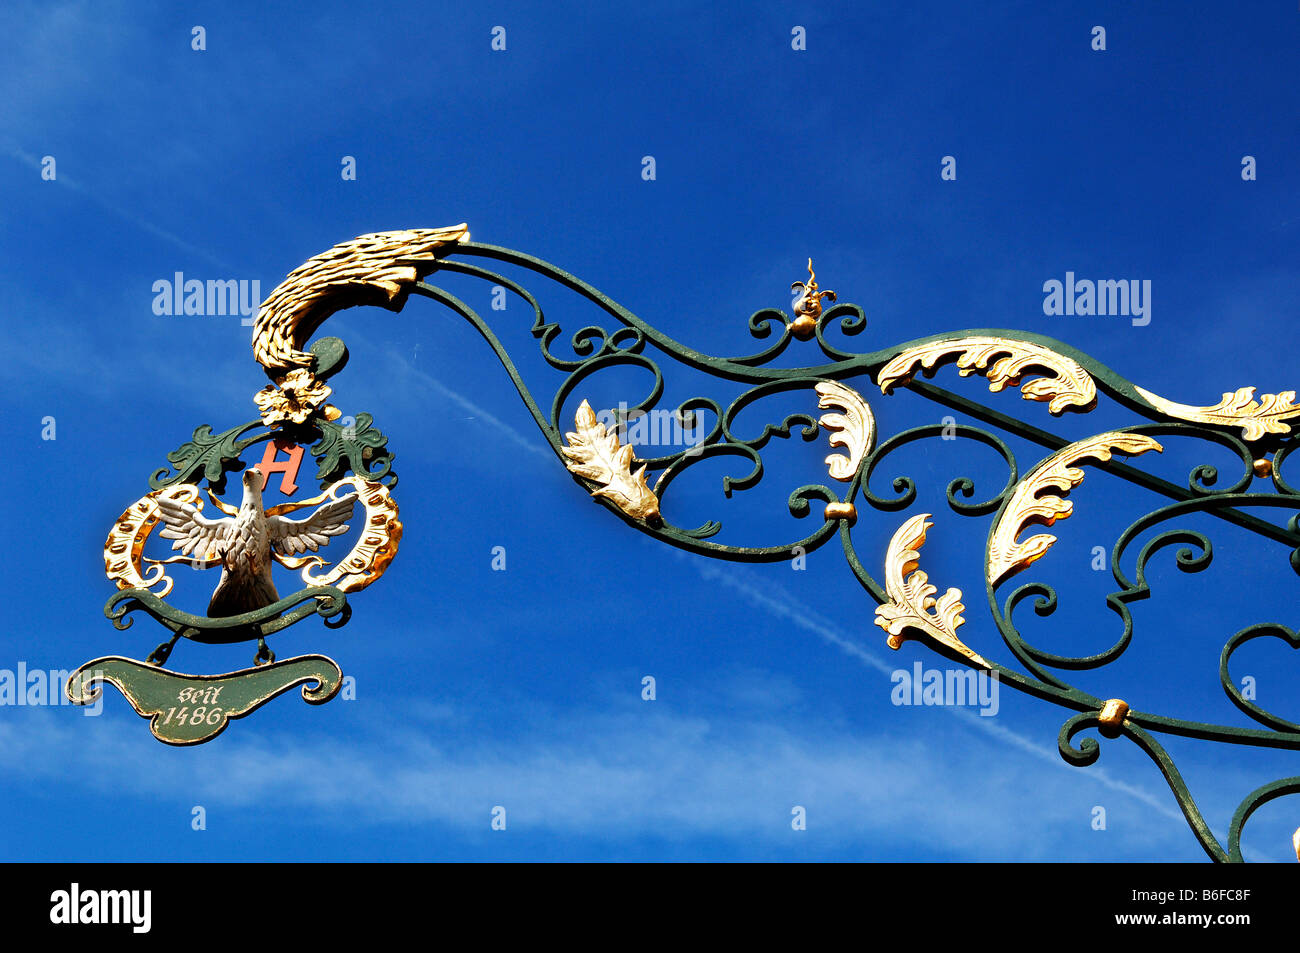 Decorative shop sign for a pharmacy in Nuremberg, Bavaria, Germany, Europe - Stock Image